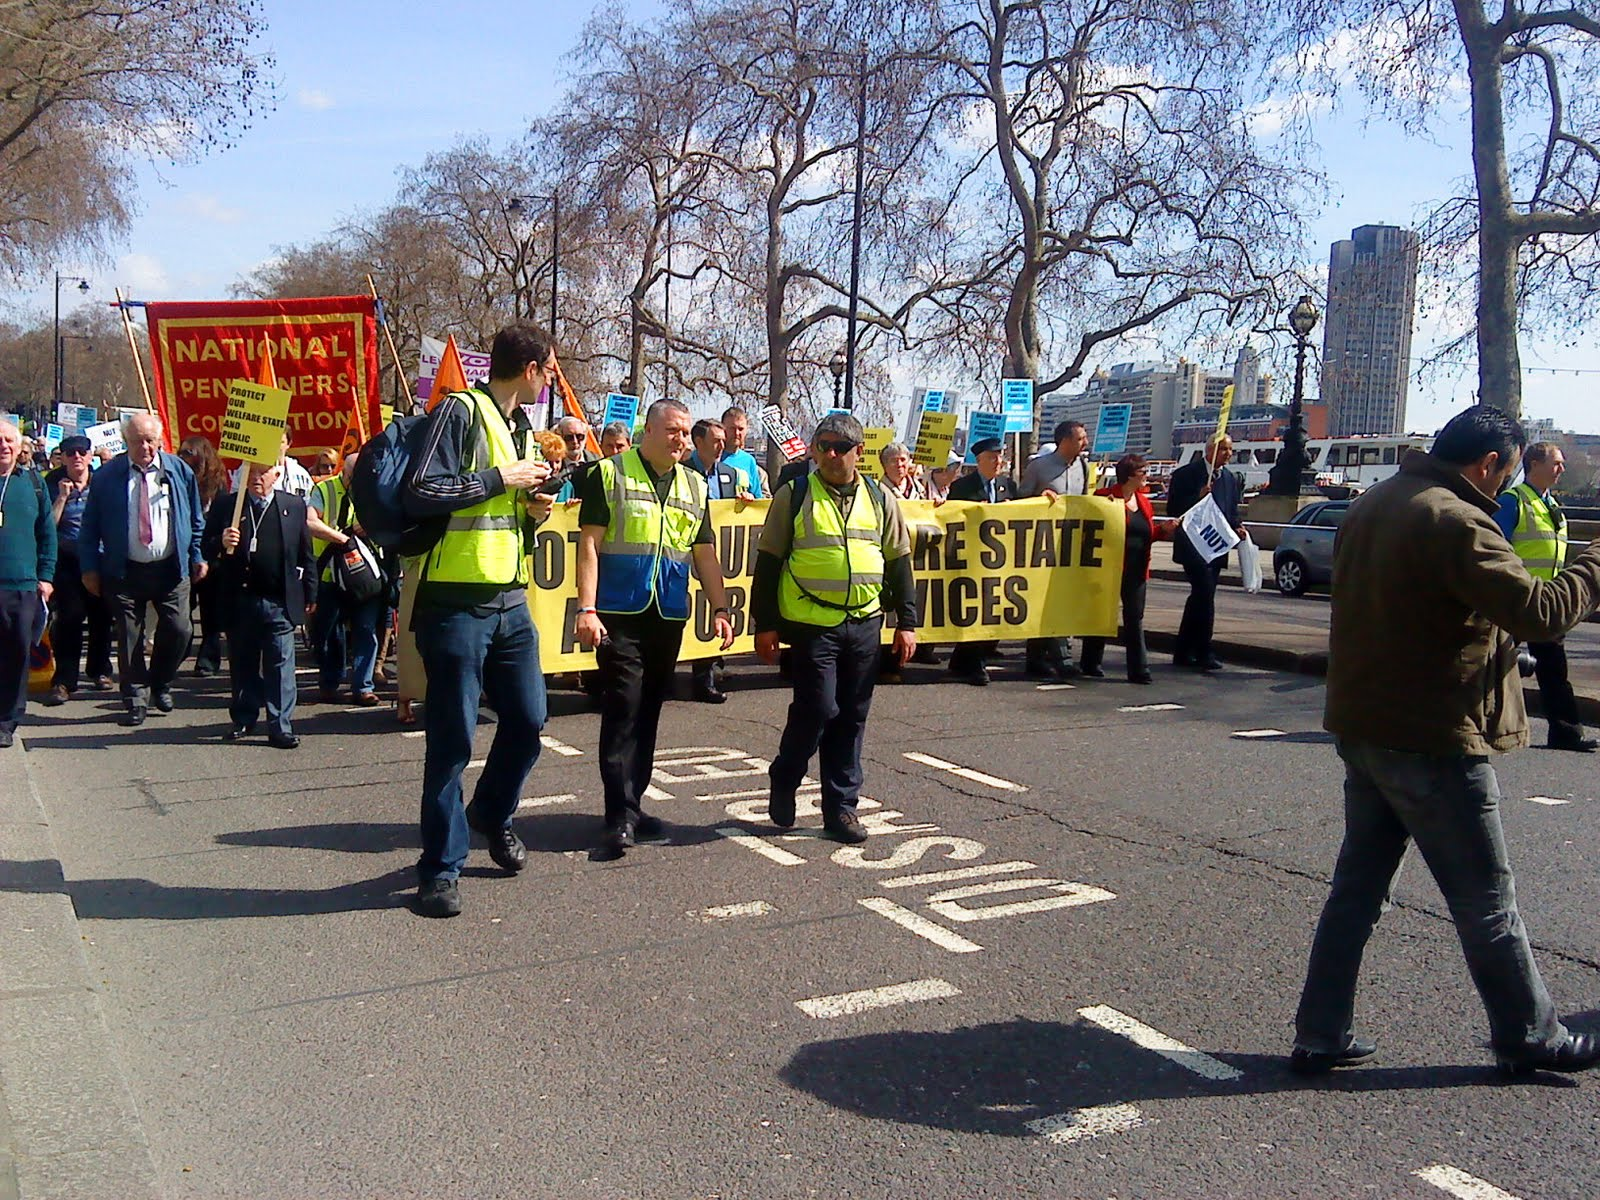 Tony Greenstein Blog: Tony Greenstein's Blog: March For Jobs, Pensions And